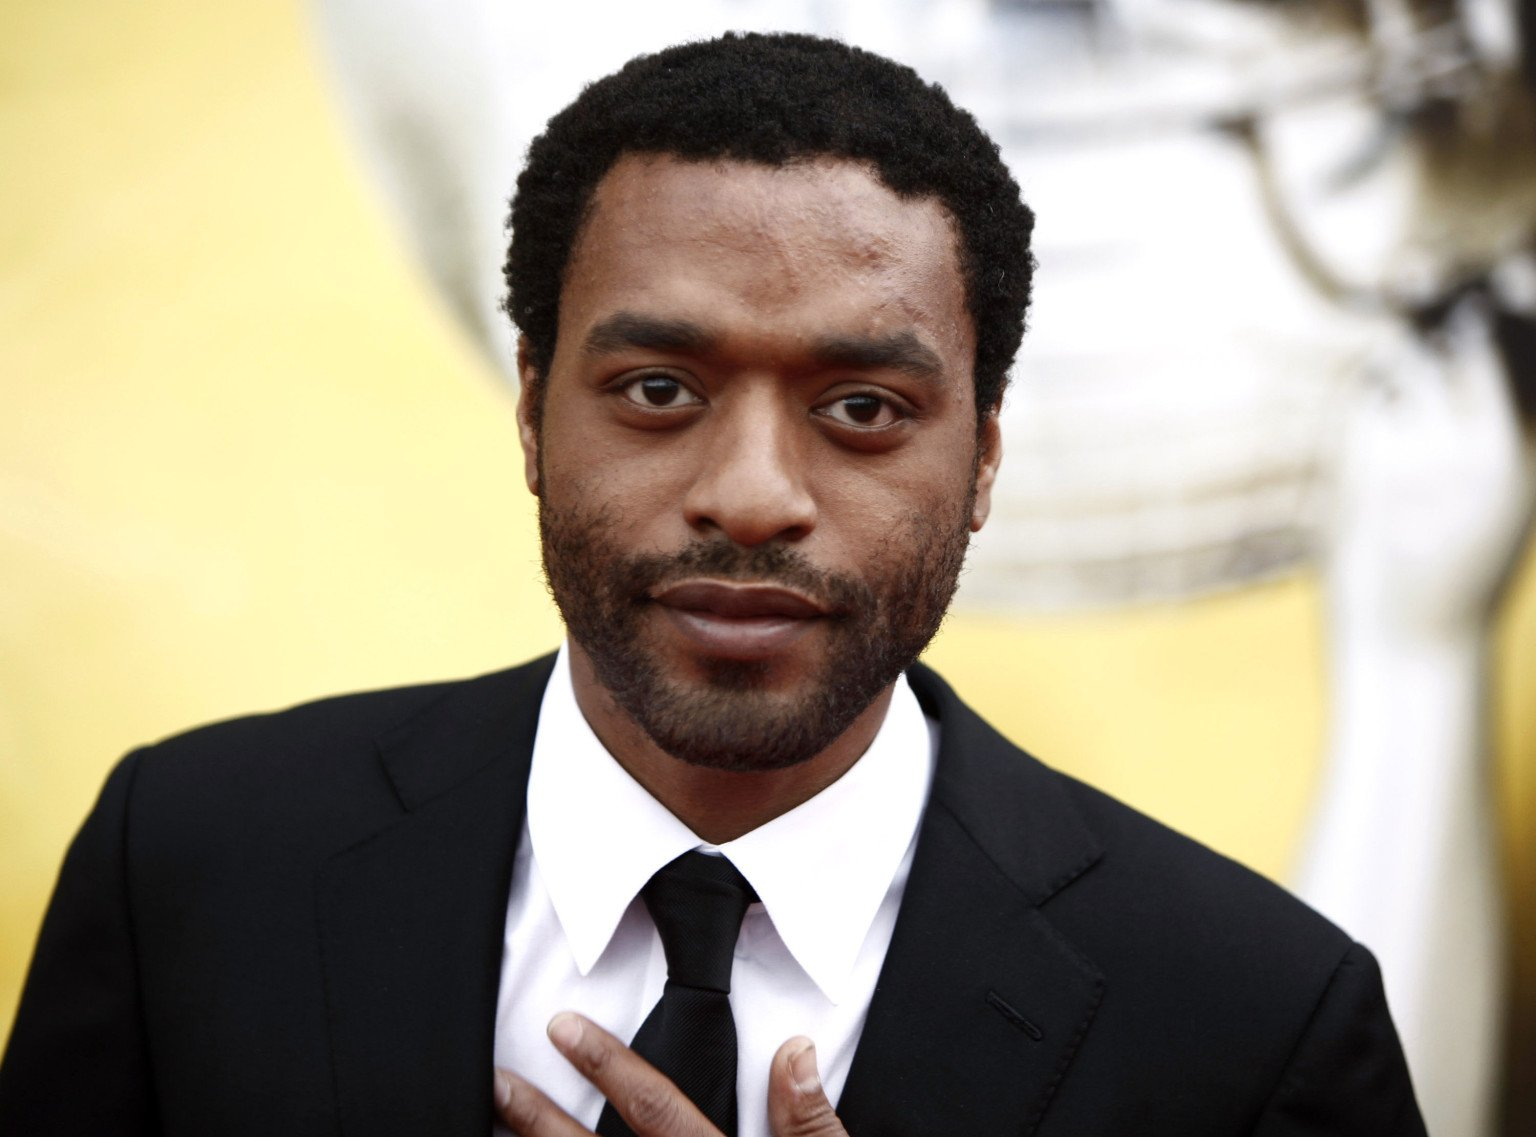 Marvel Circling Chiwetel Ejiofor For Lead Role In Doctor Strange